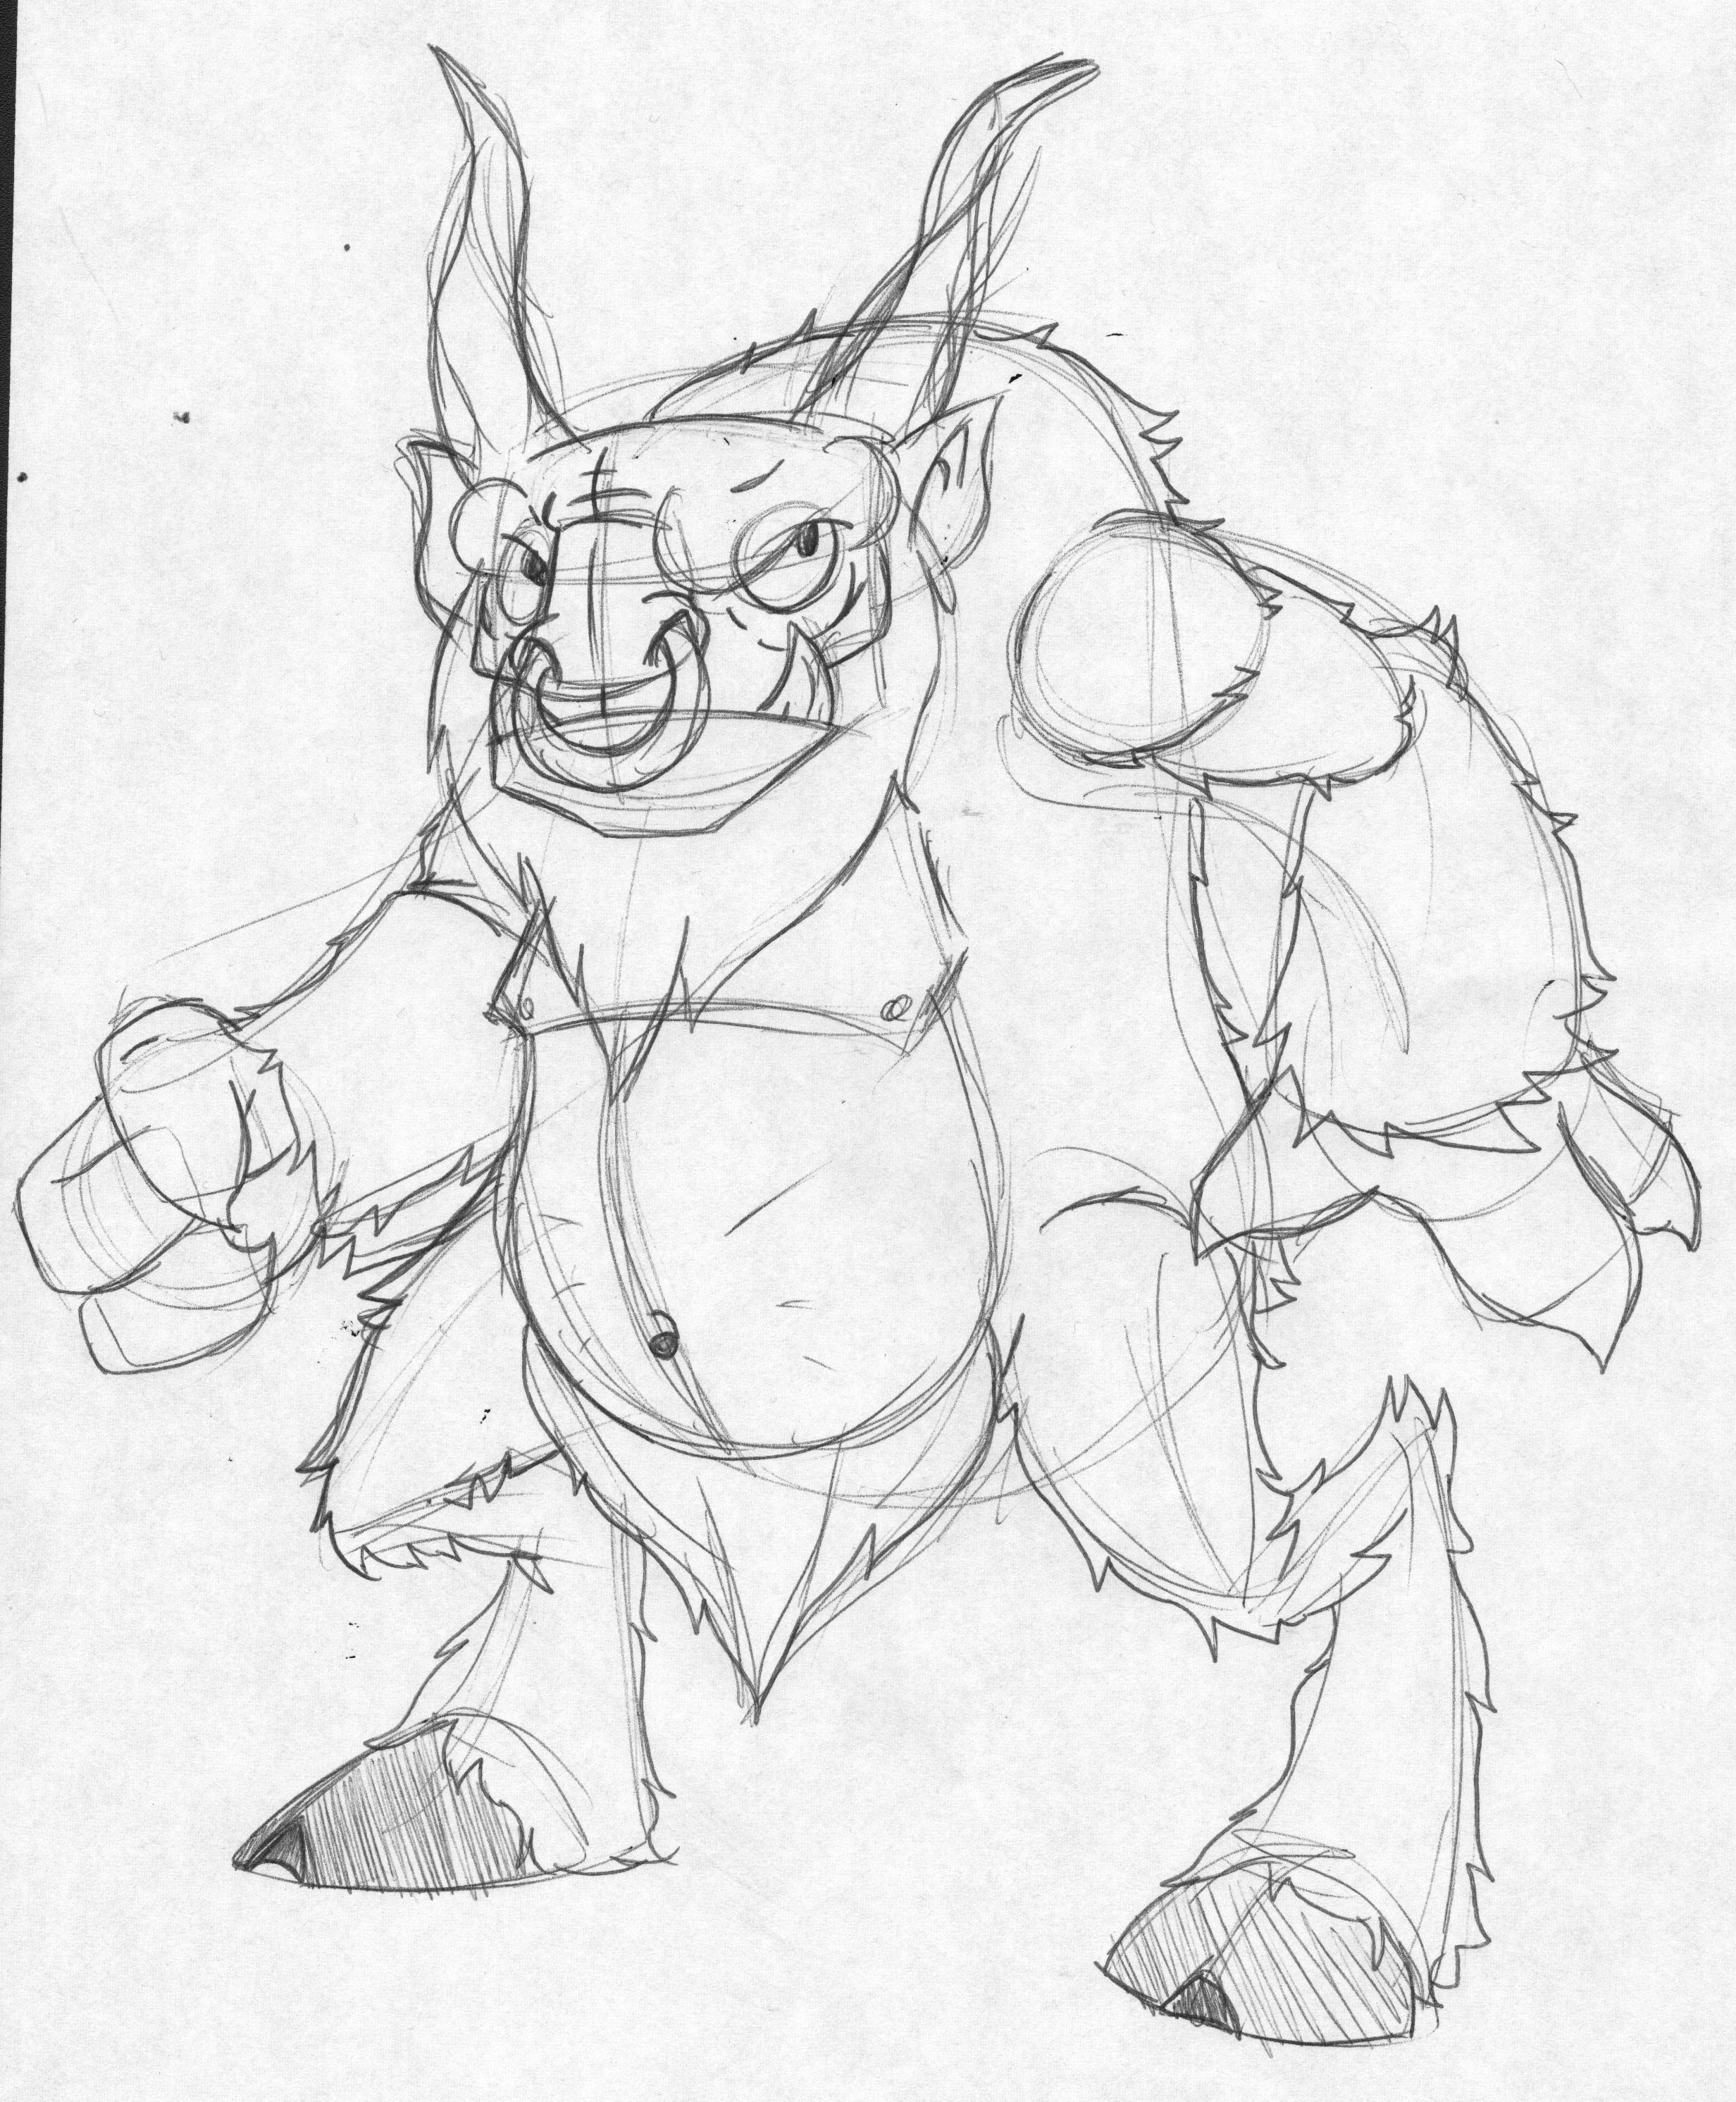 Minotaur Drawing at GetDrawings com | Free for personal use